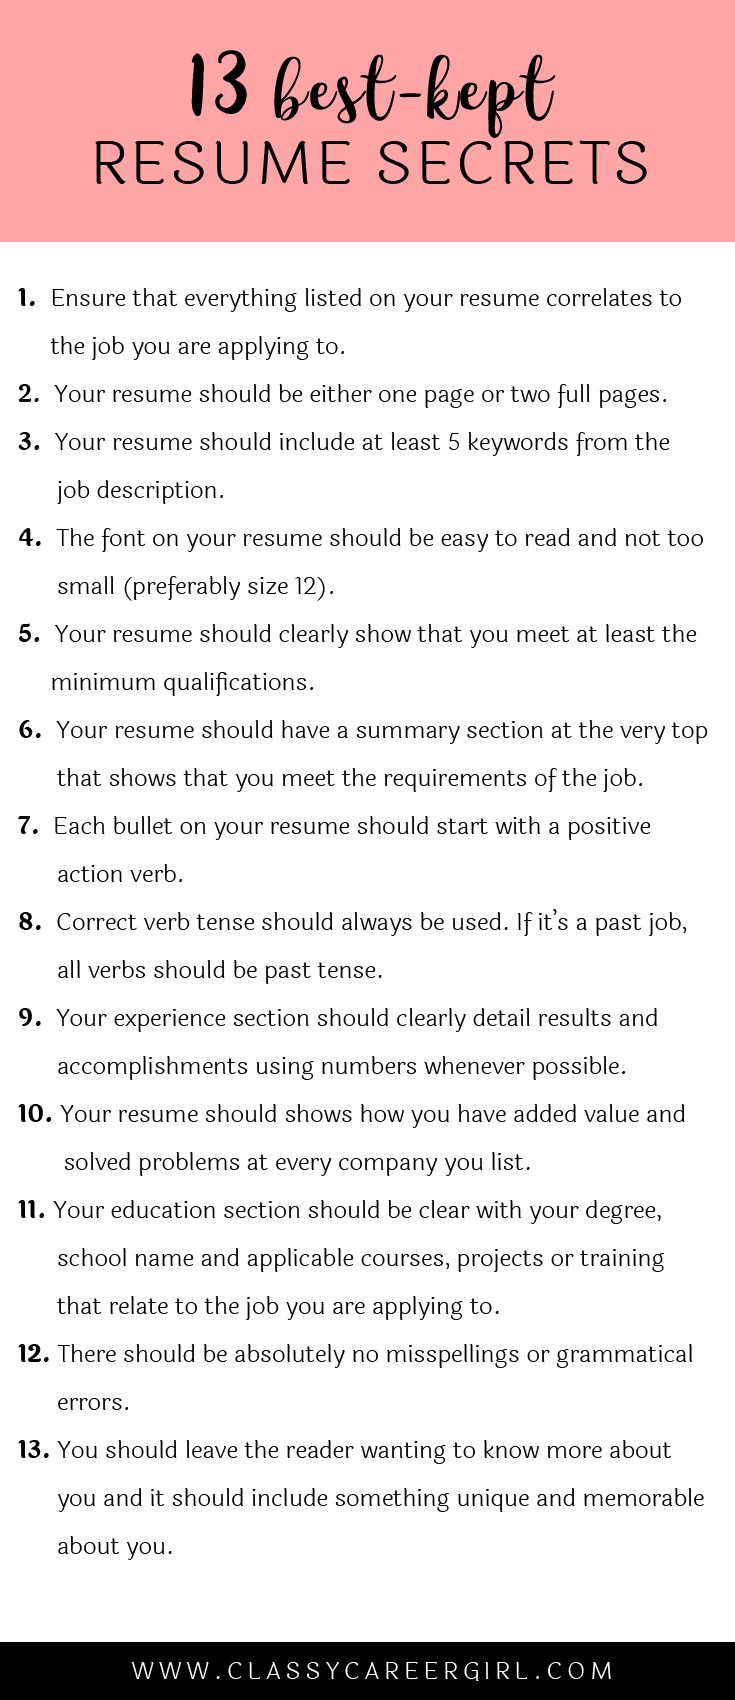 Opposenewapstandardsus  Nice  Ideas About Resume On Pinterest  Cv Format Resume Cv And  With Handsome Some Hiring Managers Will Toss Your Resume Out If You Dont Know These  With Divine Do A Resume Also Resume Introduction Letter In Addition Resume Reference Sheet And The Ladders Resume As Well As Resume Outline Template Additionally Resume Builder For College Students From Pinterestcom With Opposenewapstandardsus  Handsome  Ideas About Resume On Pinterest  Cv Format Resume Cv And  With Divine Some Hiring Managers Will Toss Your Resume Out If You Dont Know These  And Nice Do A Resume Also Resume Introduction Letter In Addition Resume Reference Sheet From Pinterestcom